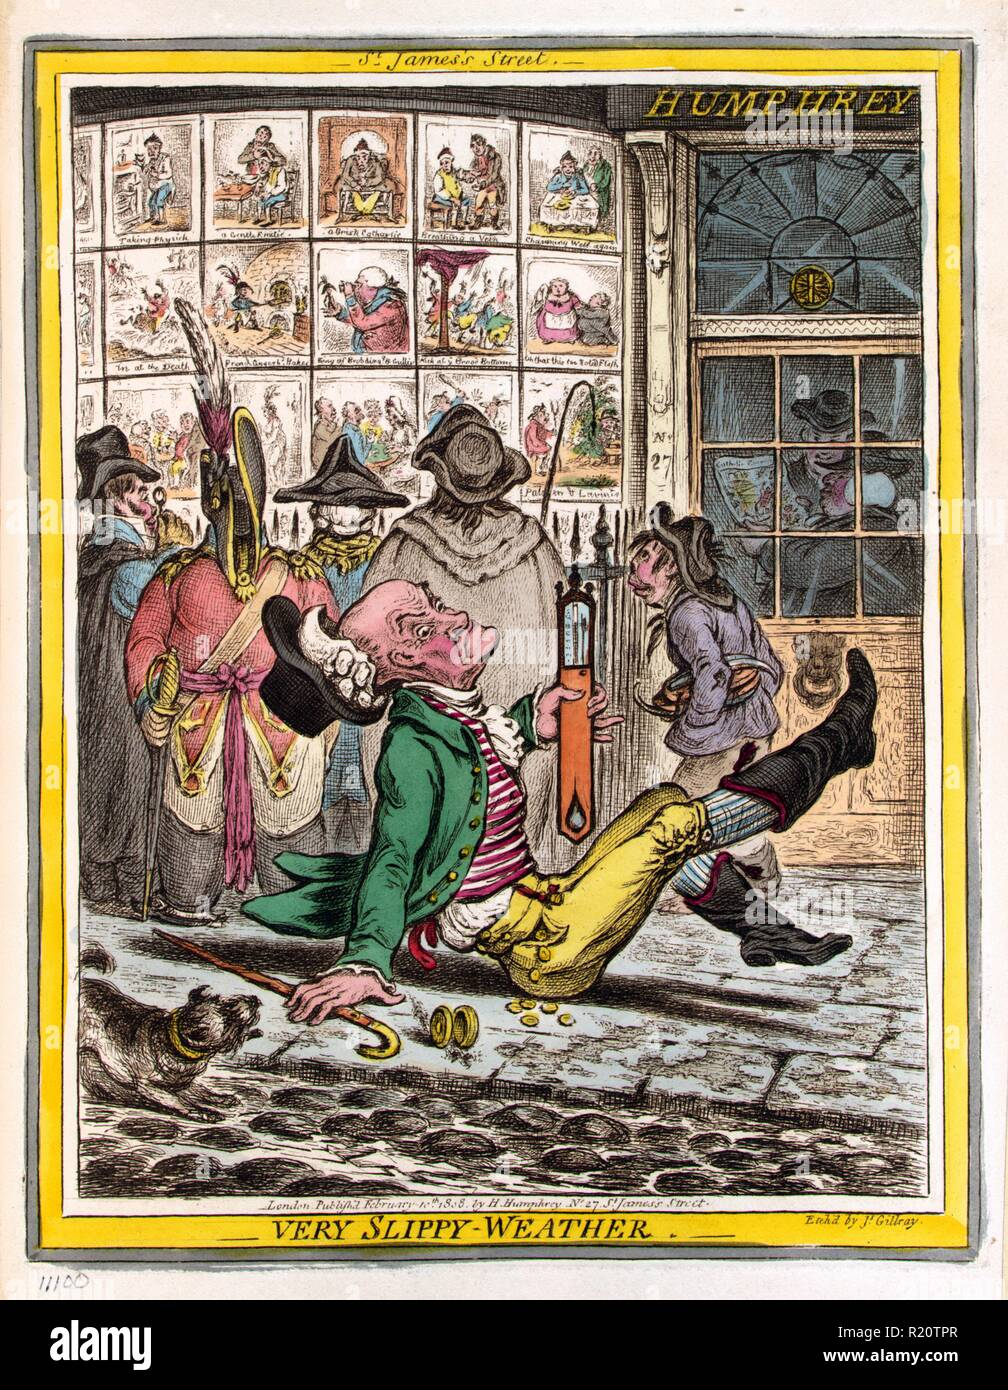 Hand-coloured etching depicts an elderly man who has slipped and fallen on the sidewalk outside Humphrey's printing establishment at No. 27 St. James's Street, London. He is holding a thermometer which he manages keep upright, behind him are five individuals looking at caricatures printed by Humphrey that are on display in the shop windows. Created by James Gillray (1756-1815) British caricaturist and printmaker famous for his etched political and social satires. Dated 1808 - Stock Image